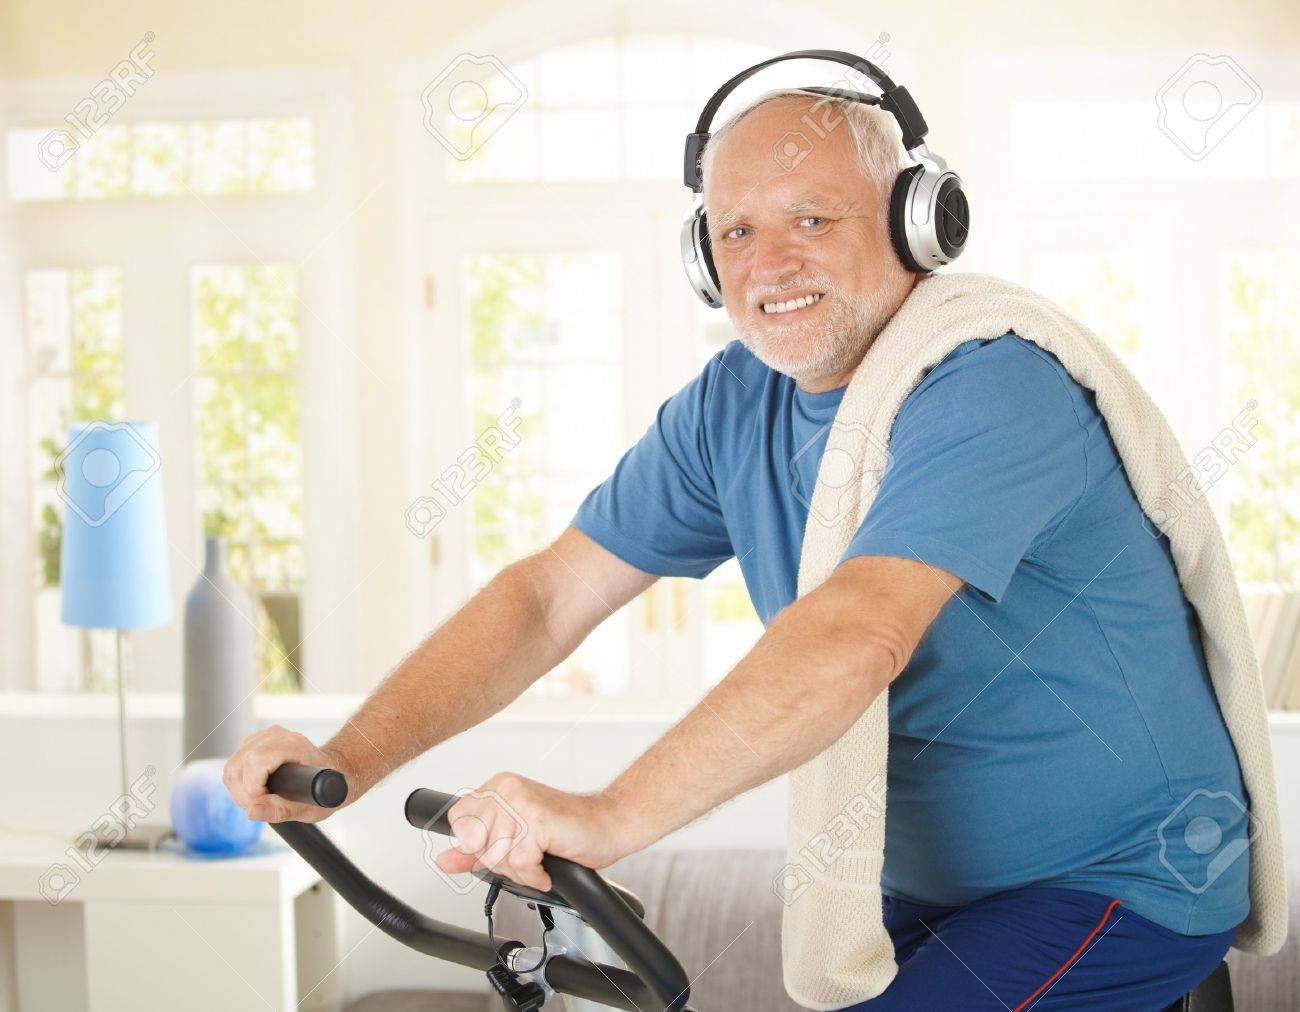 Active pensioner doing spinning on bike at home while listening to music, smiling at camera. Stock Photo - 7899175